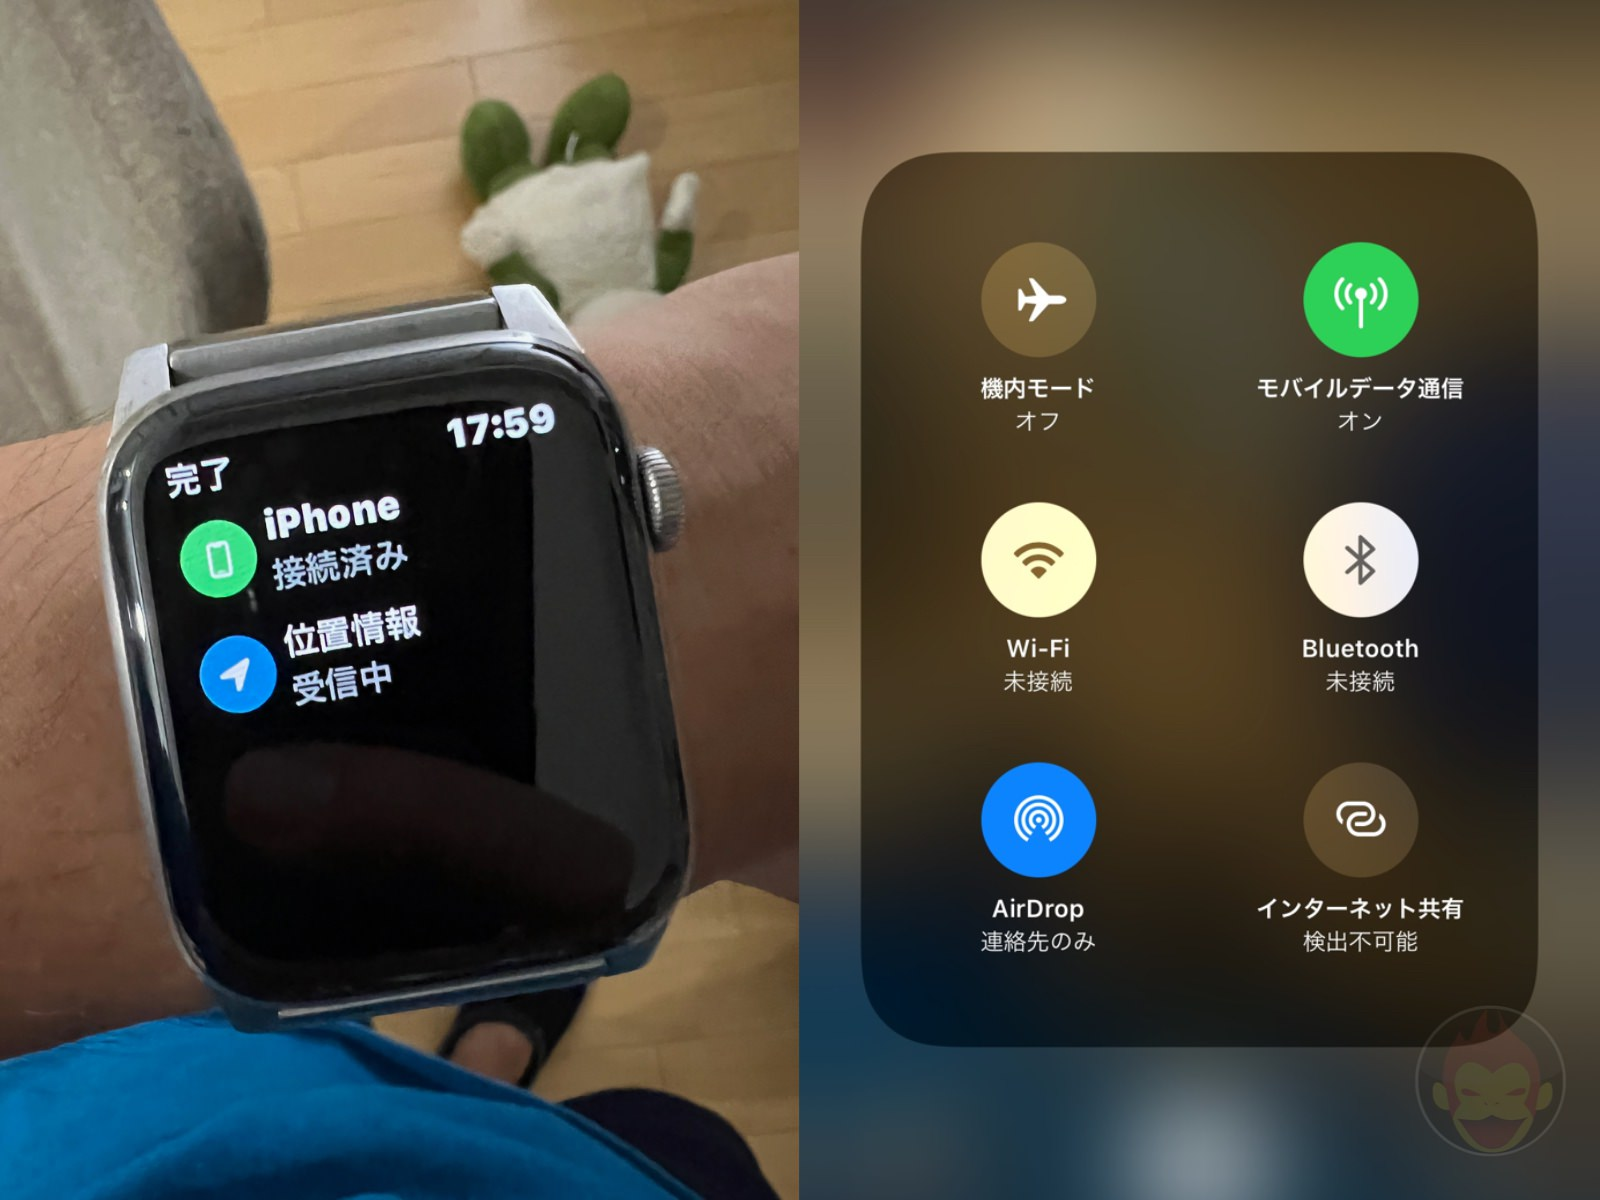 Iphone13pro and applewatch paring error 01